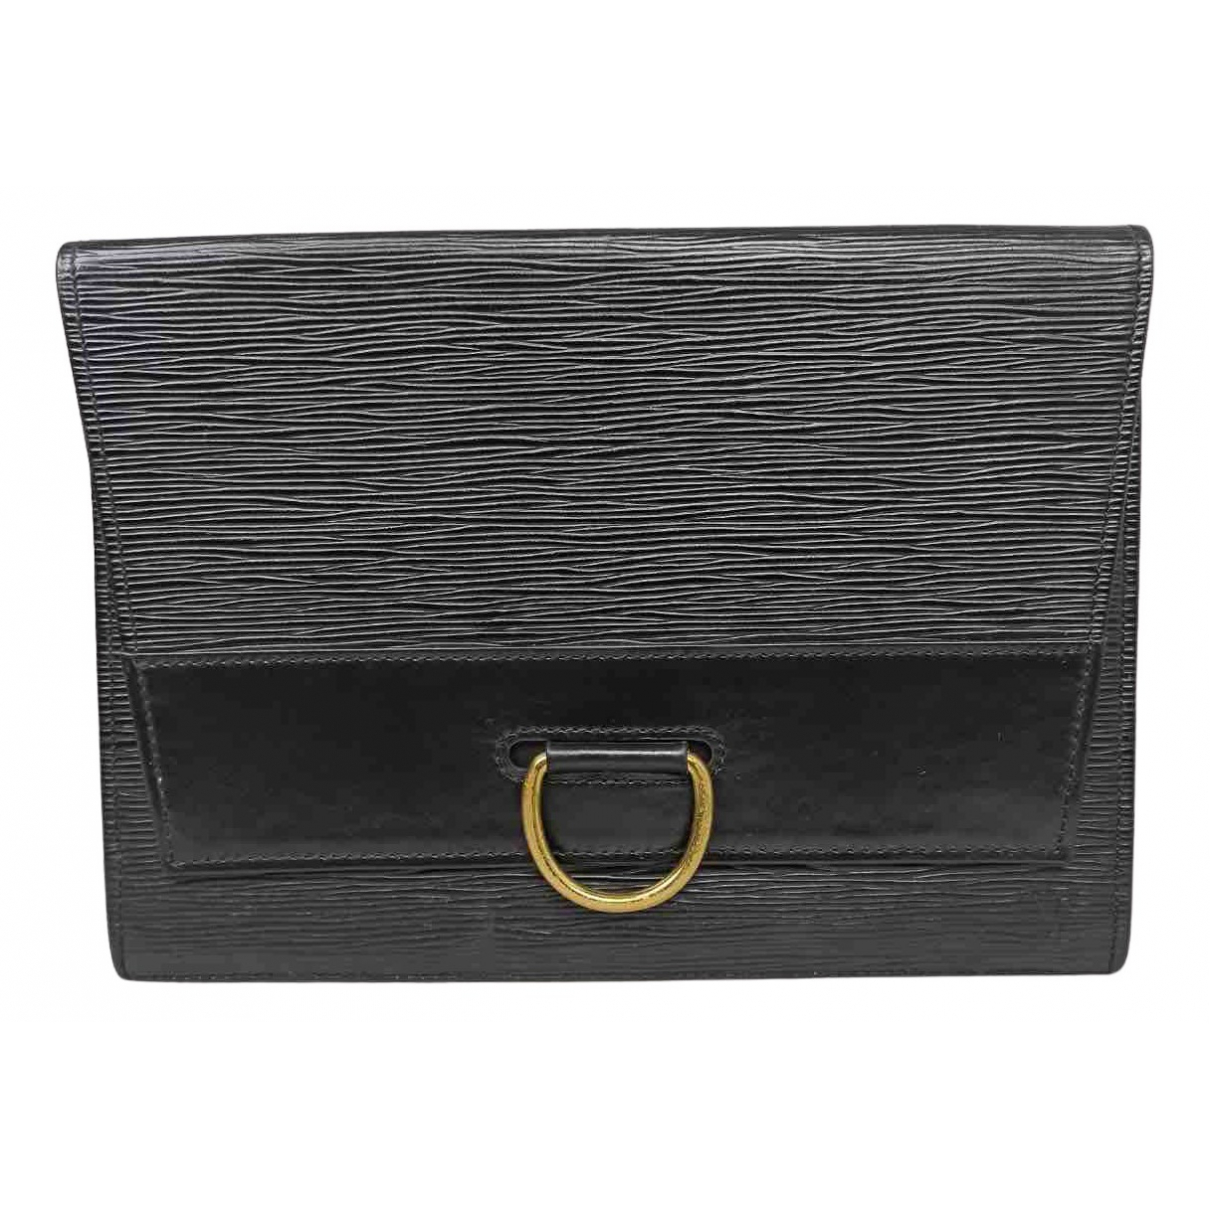 Louis Vuitton \N Clutch in  Schwarz Leder